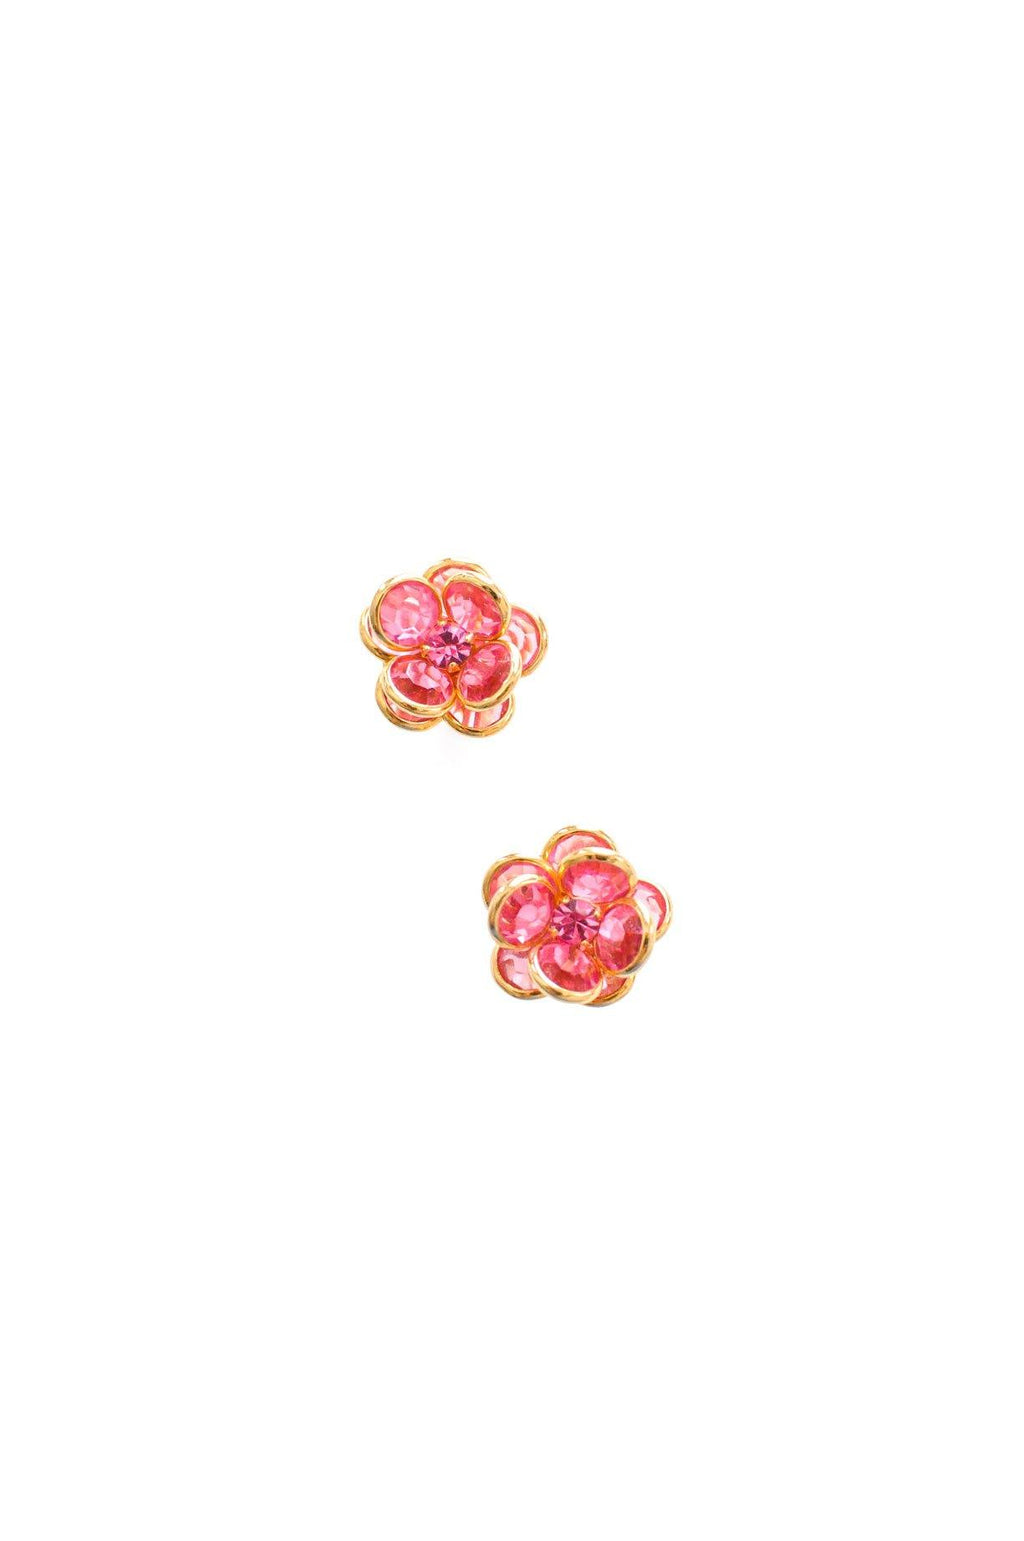 Pink Rhinestone Floral Pierced Earrings